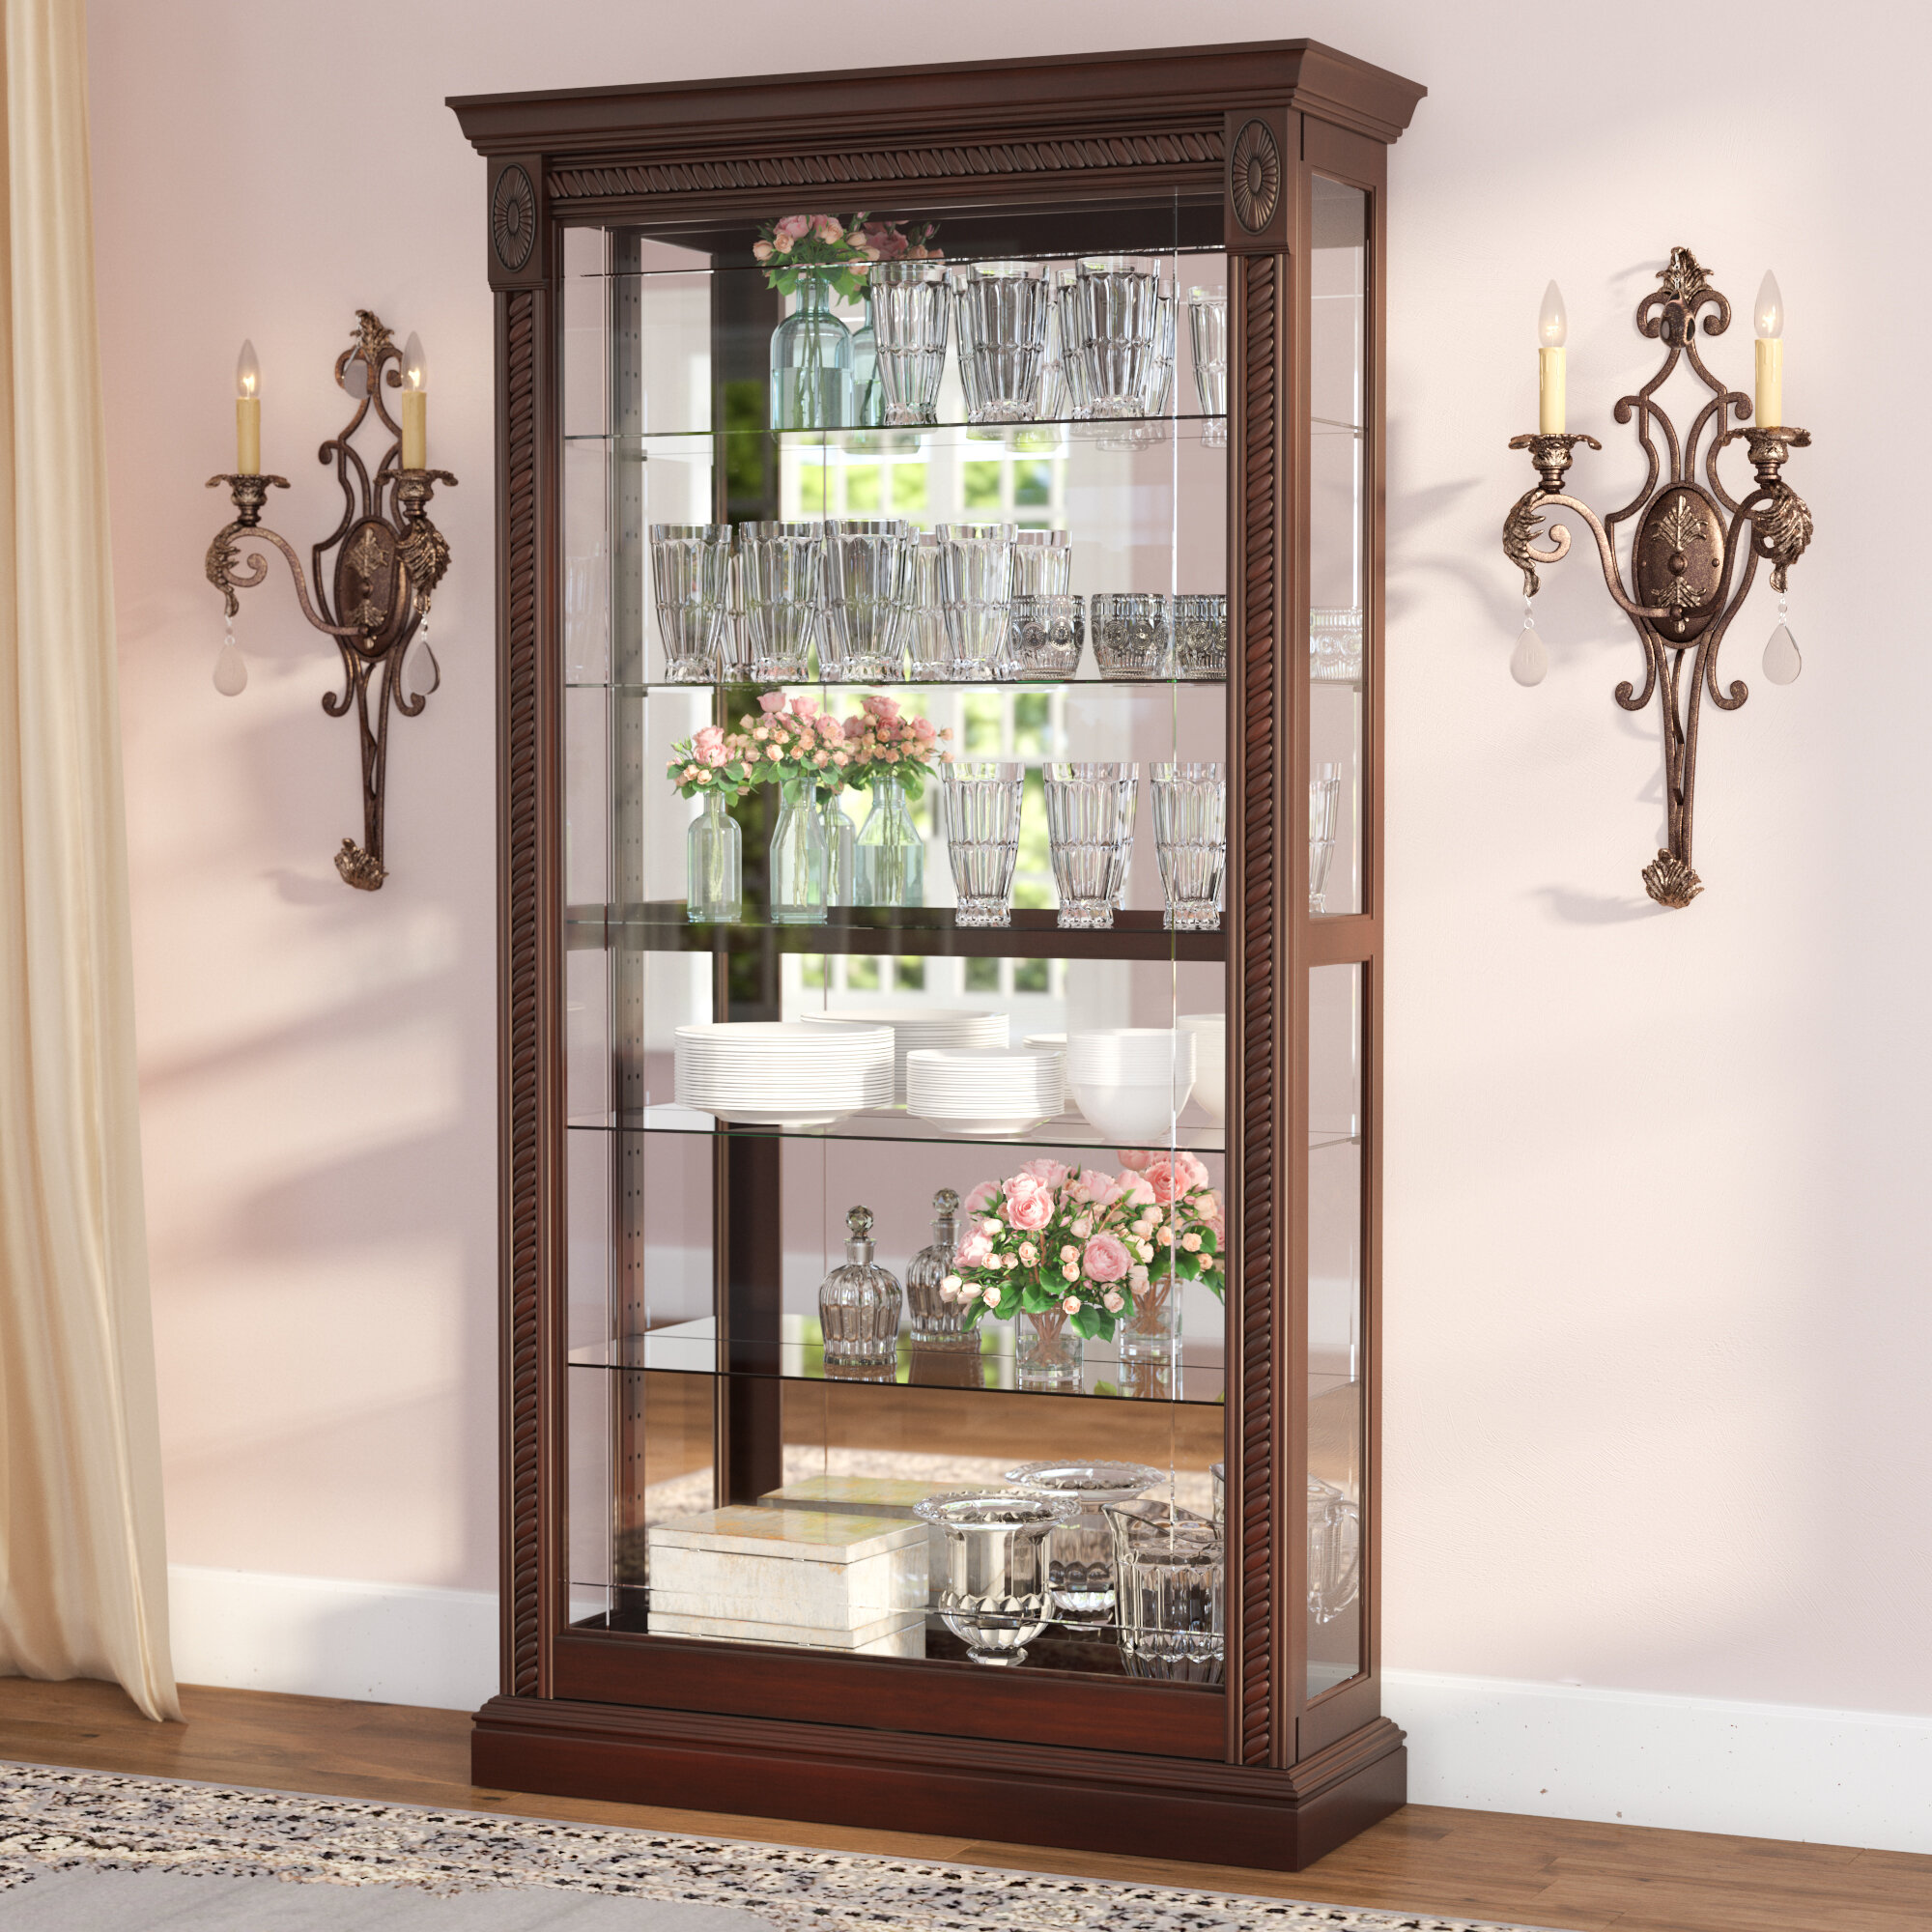 cabinets glass curio collectibles trophy shelf small display storage itm cabinet tier case